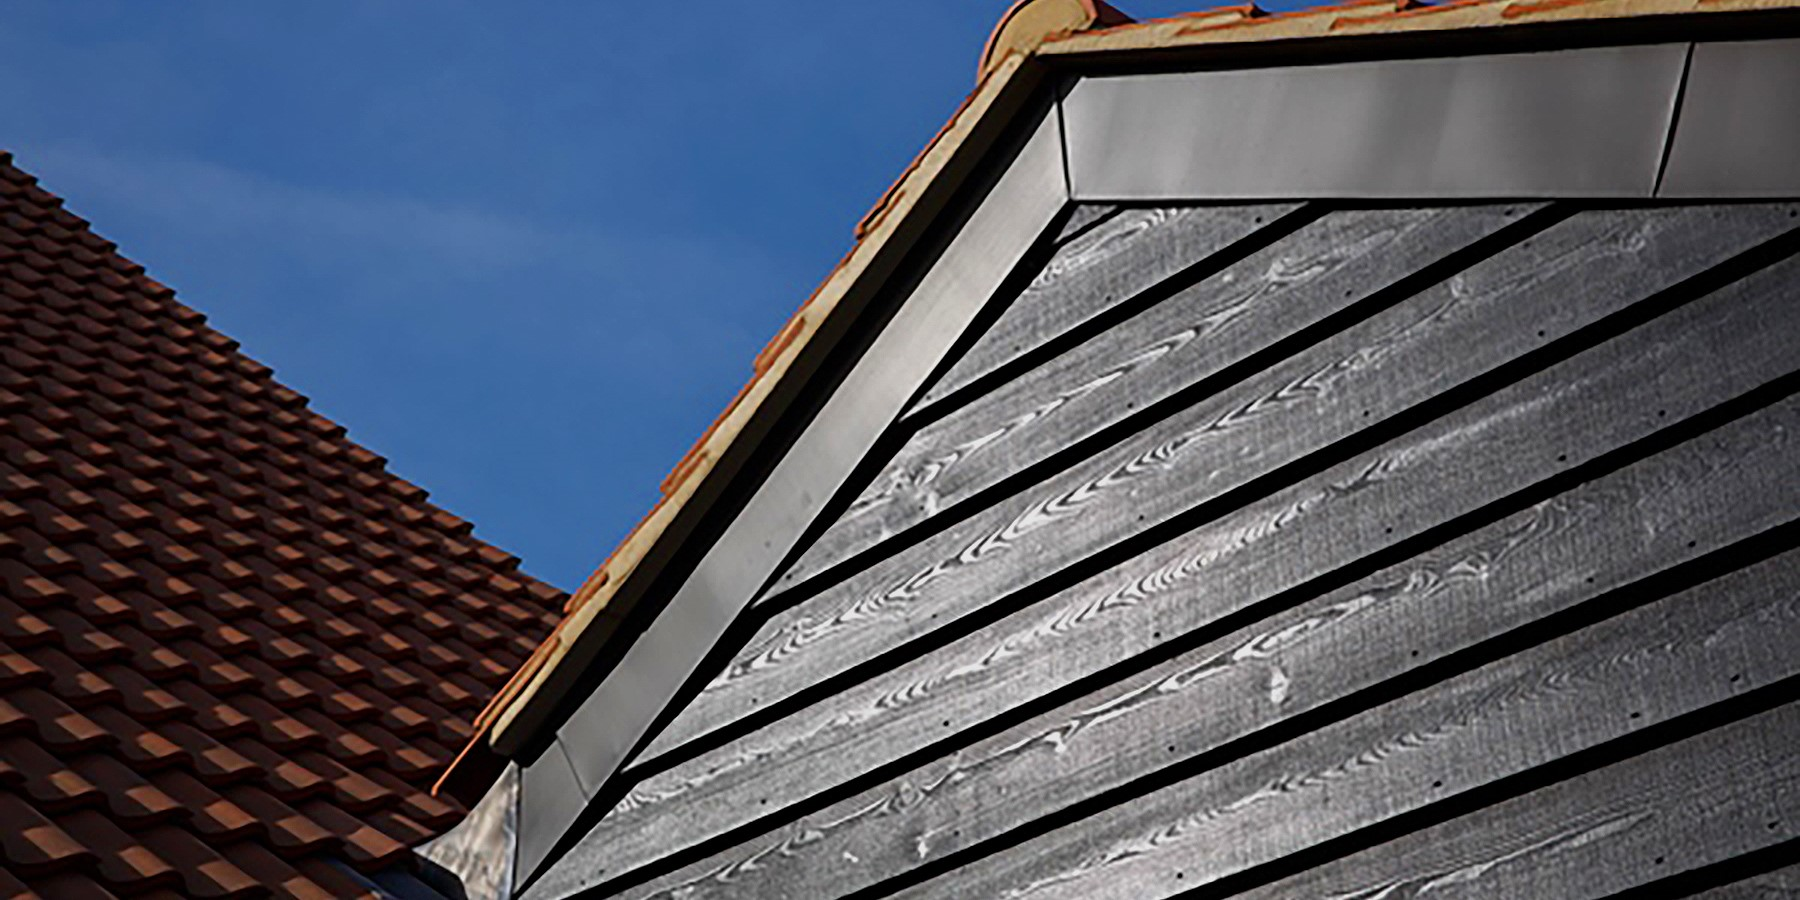 Black PaintedFeatheredge(2Ex) 32mm x 175mmOnly£1.99Per LM + VAT